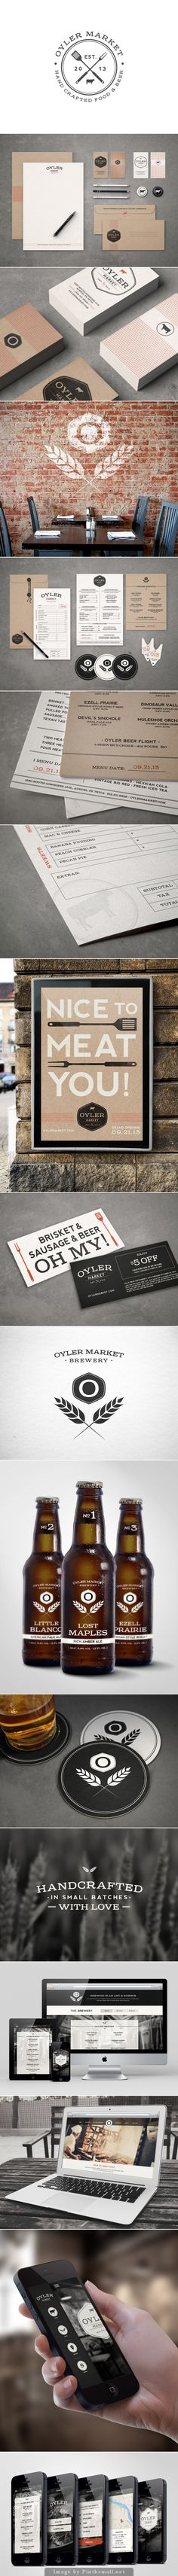 Lunchtime at Oyler Market #identity #packaging #branding PD - created via https://www.behance.net/gallery/Oyler-Market-Barbecue-Brewery/12801457